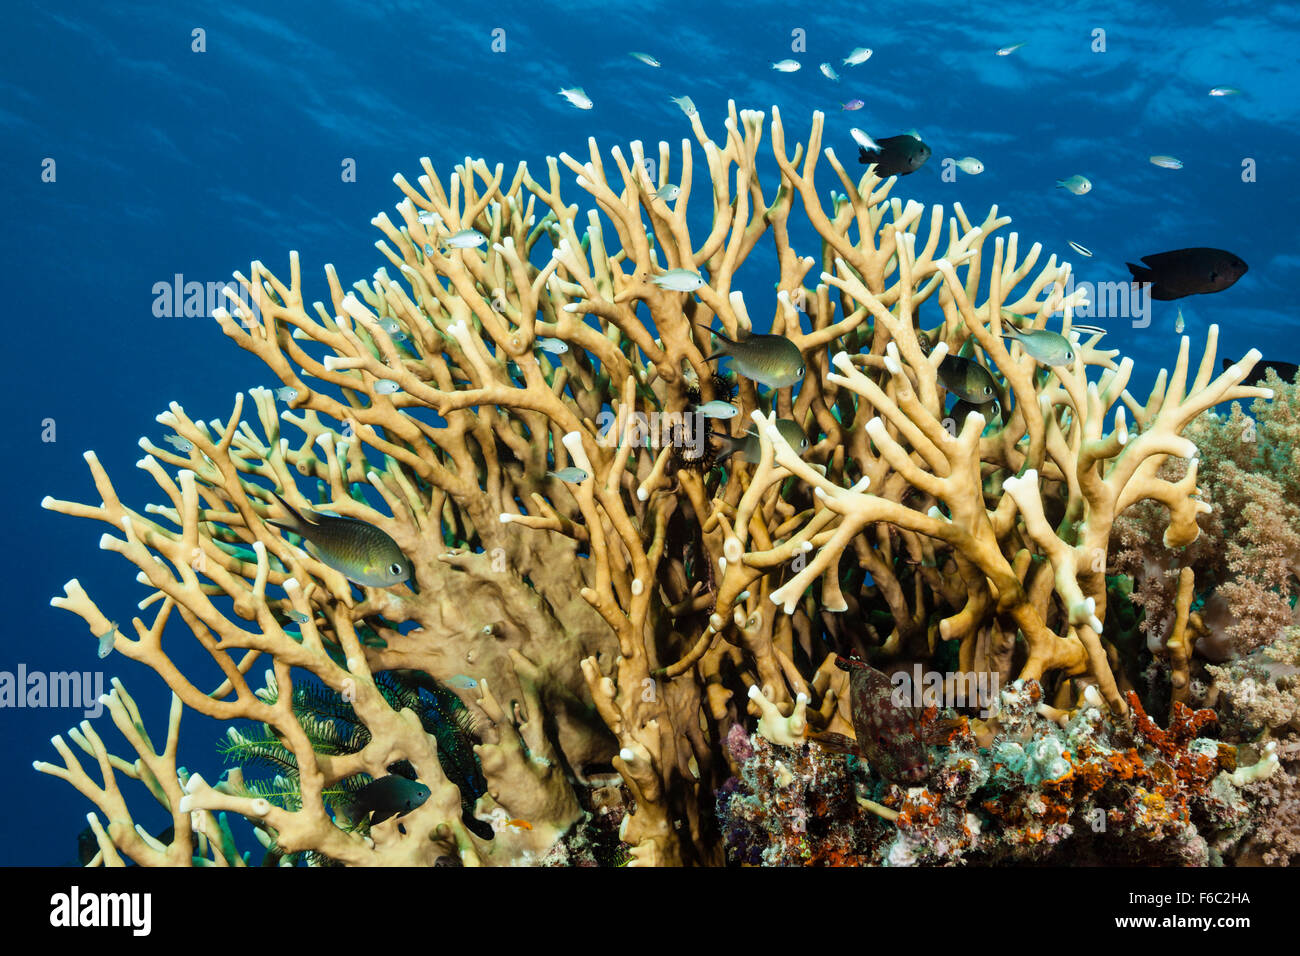 Coralfishes in Fire Coral, Great Barrier Reef, Australia - Stock Image